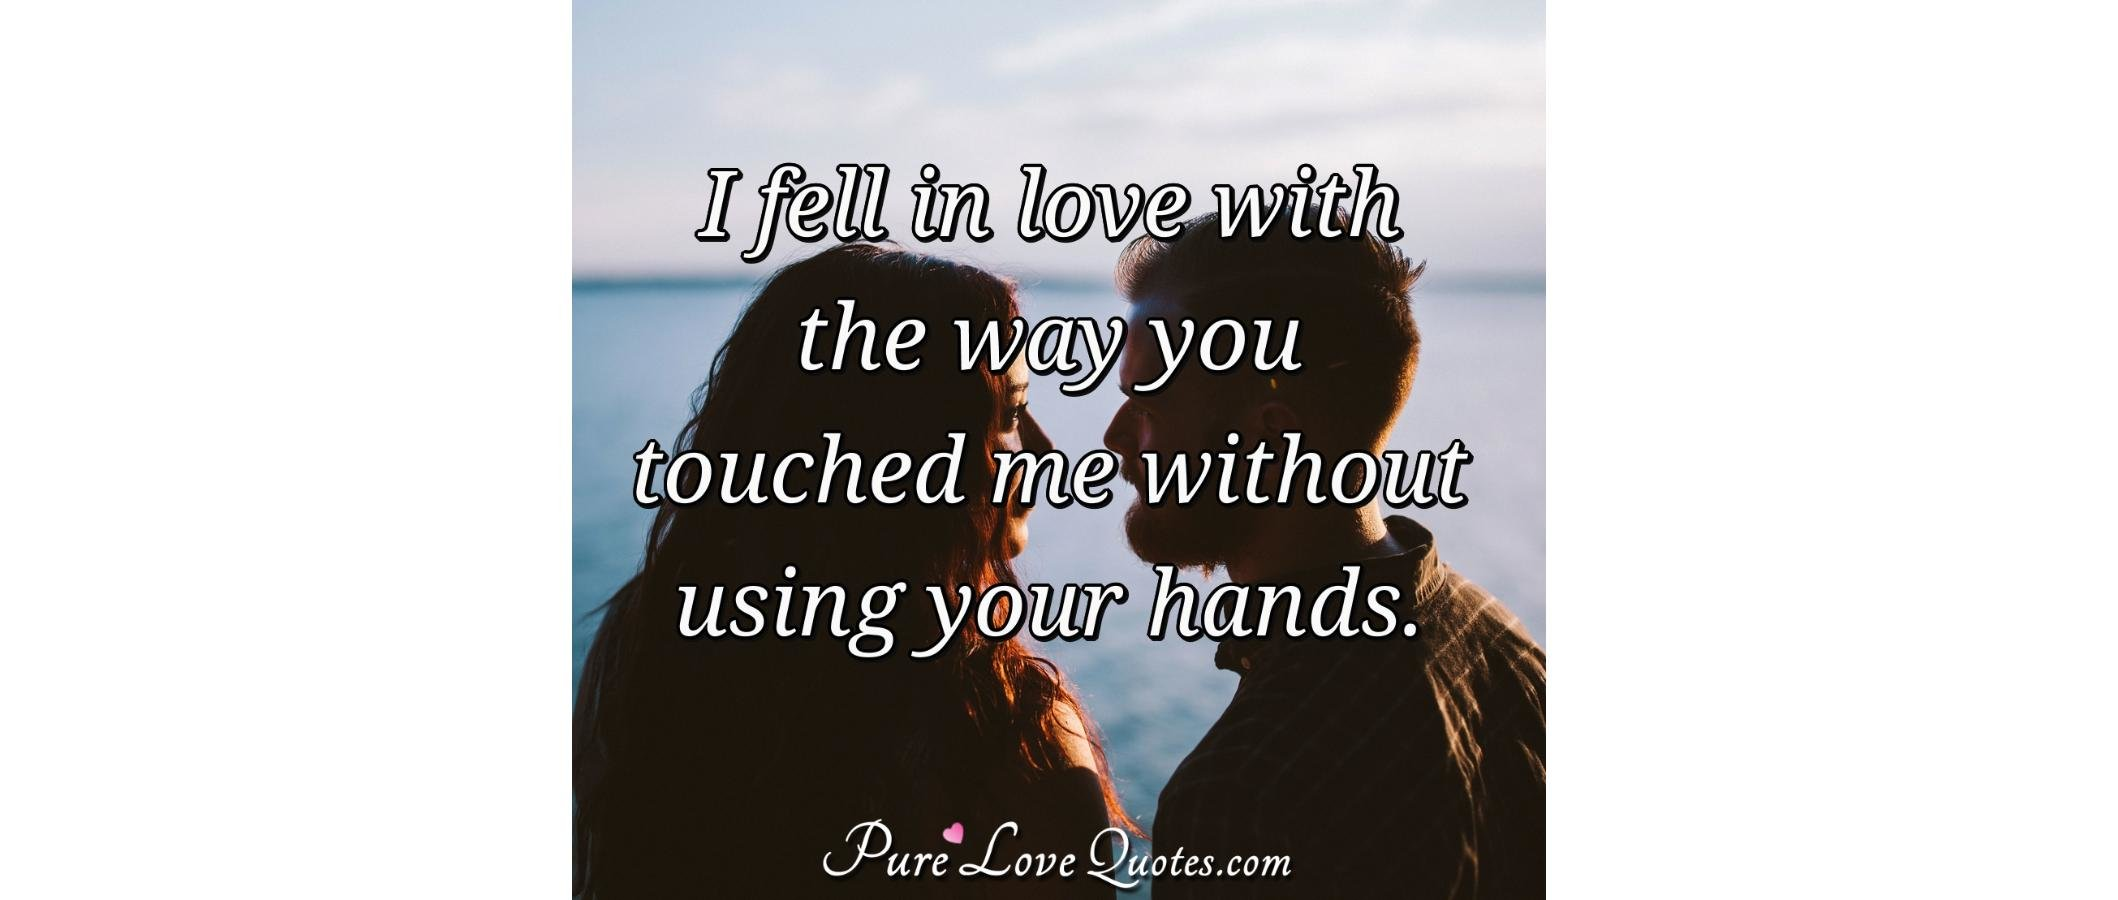 I Fell In Love With The Way You Touched Me Without Using Your Hands